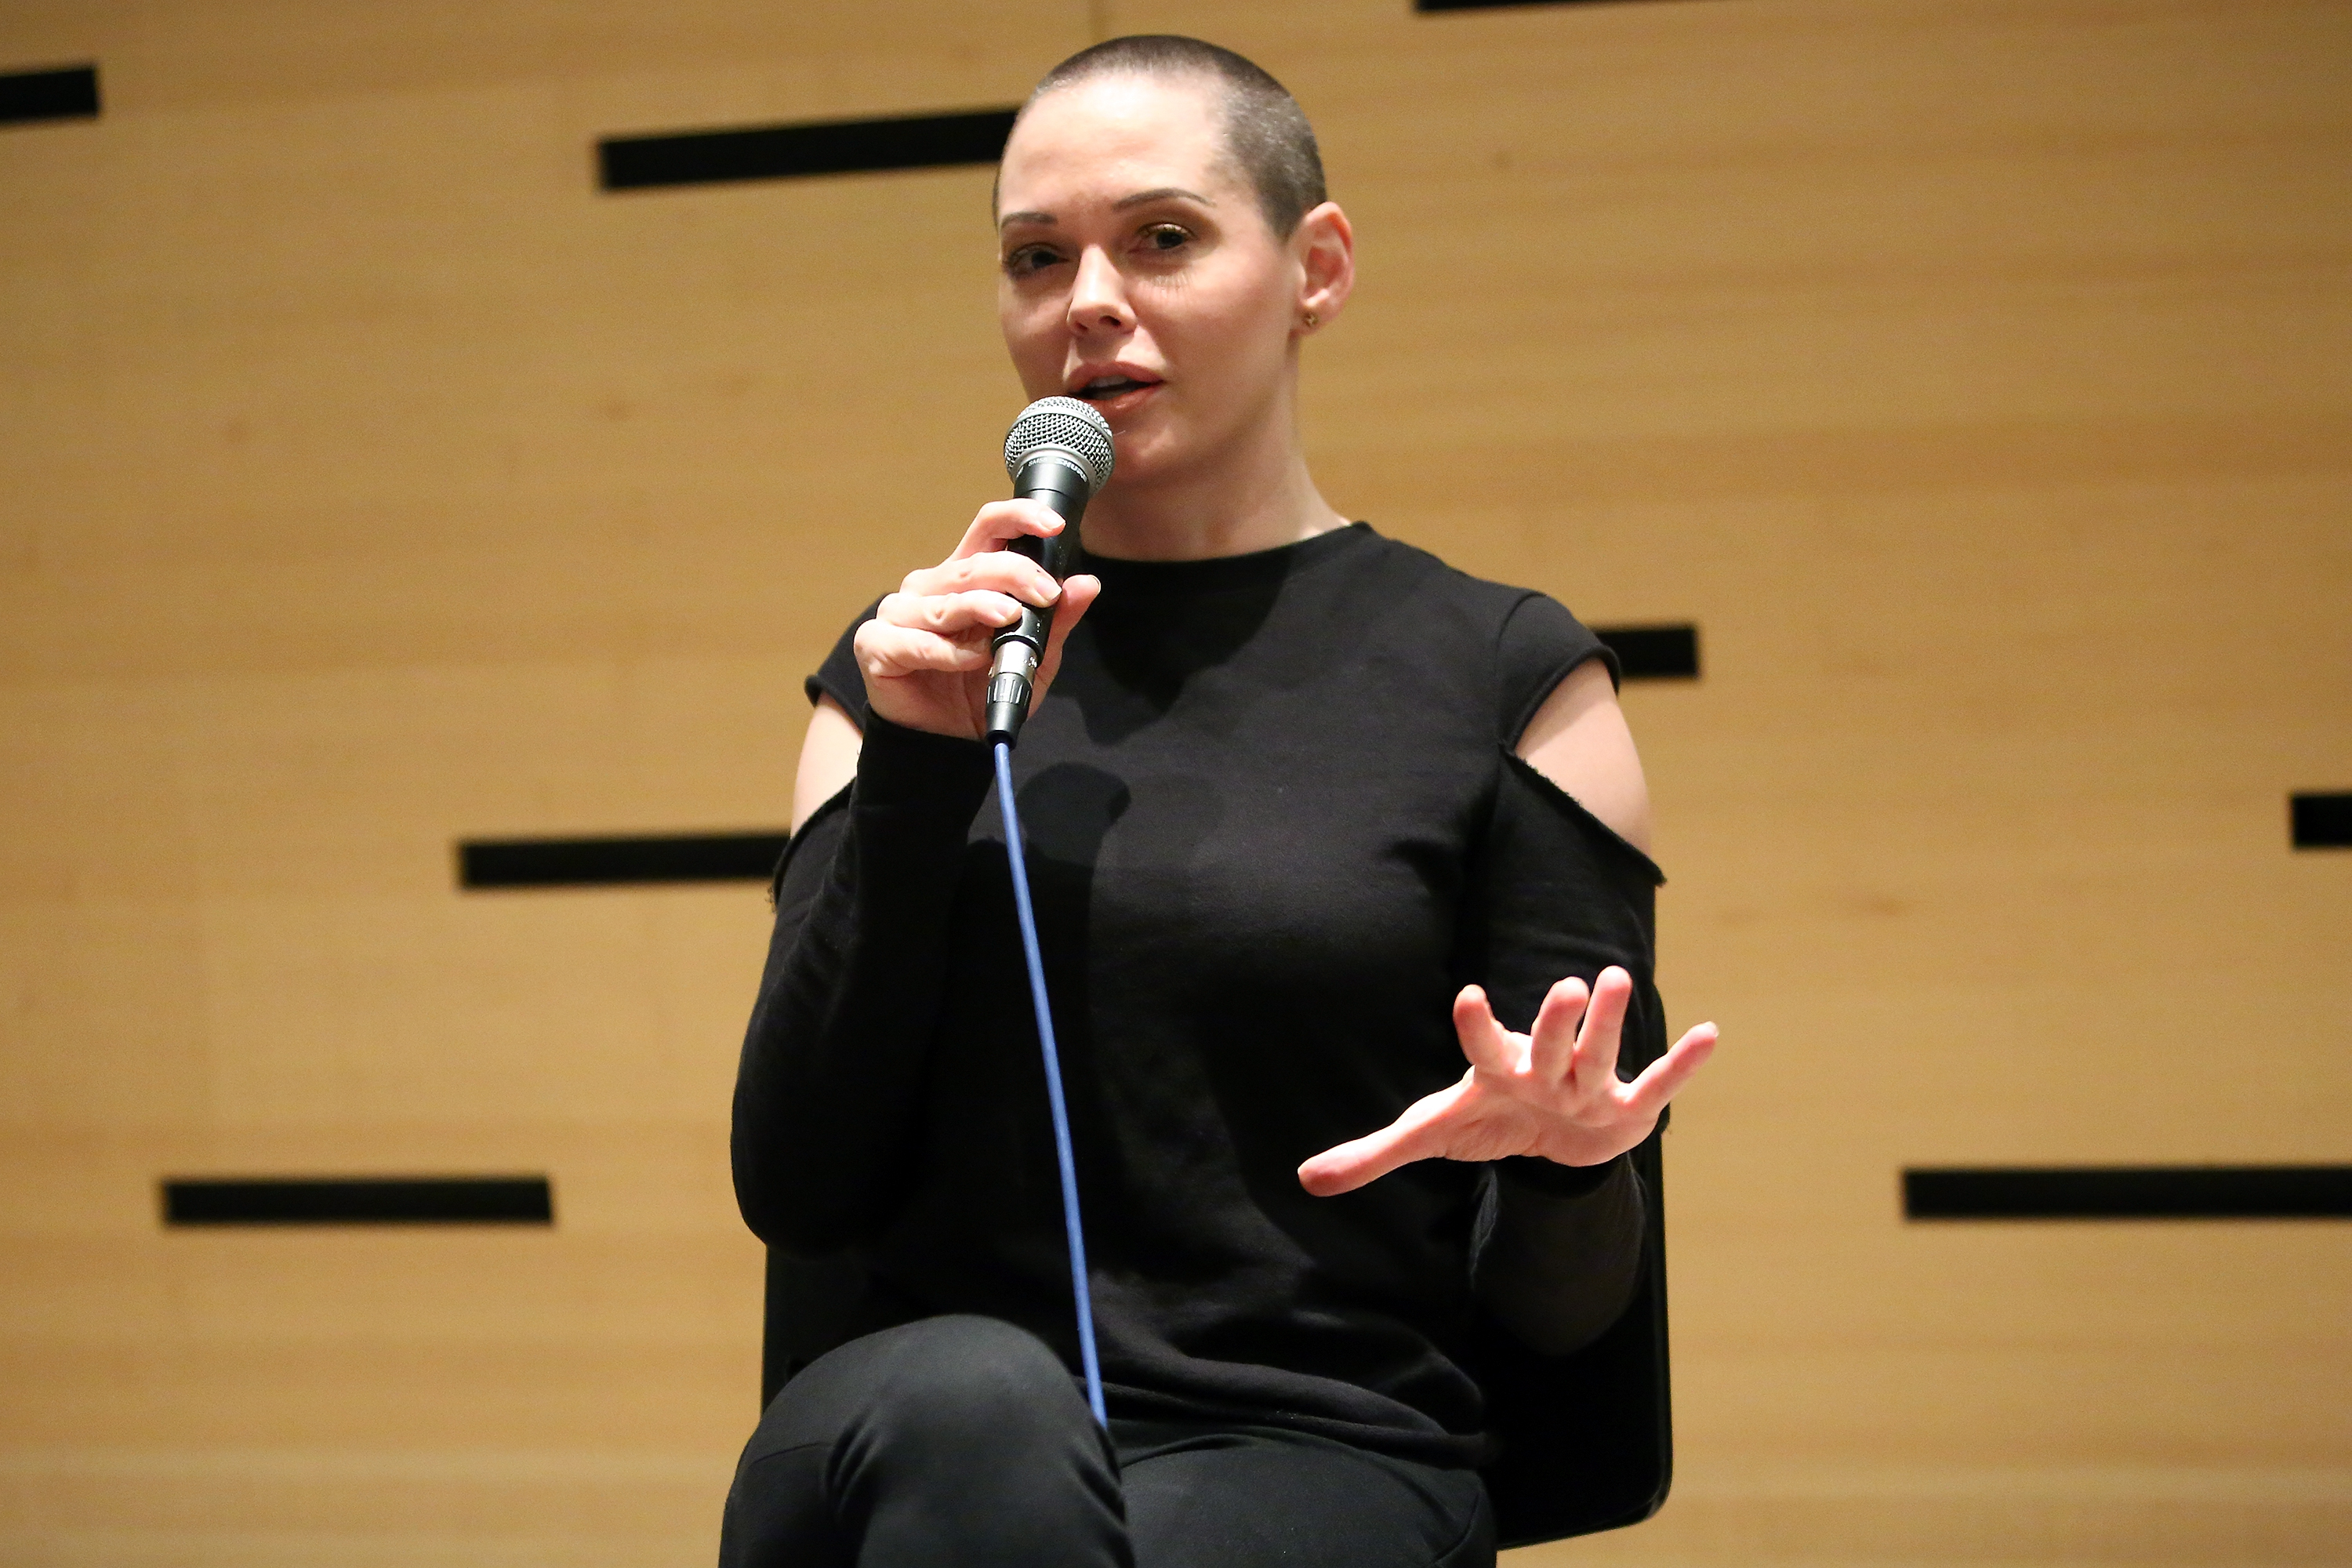 Actress and filmmaker Rose McGowan speaks at 54th New York Film Festival in Lincoln Center on Oct. 7, 2016 in New York City.